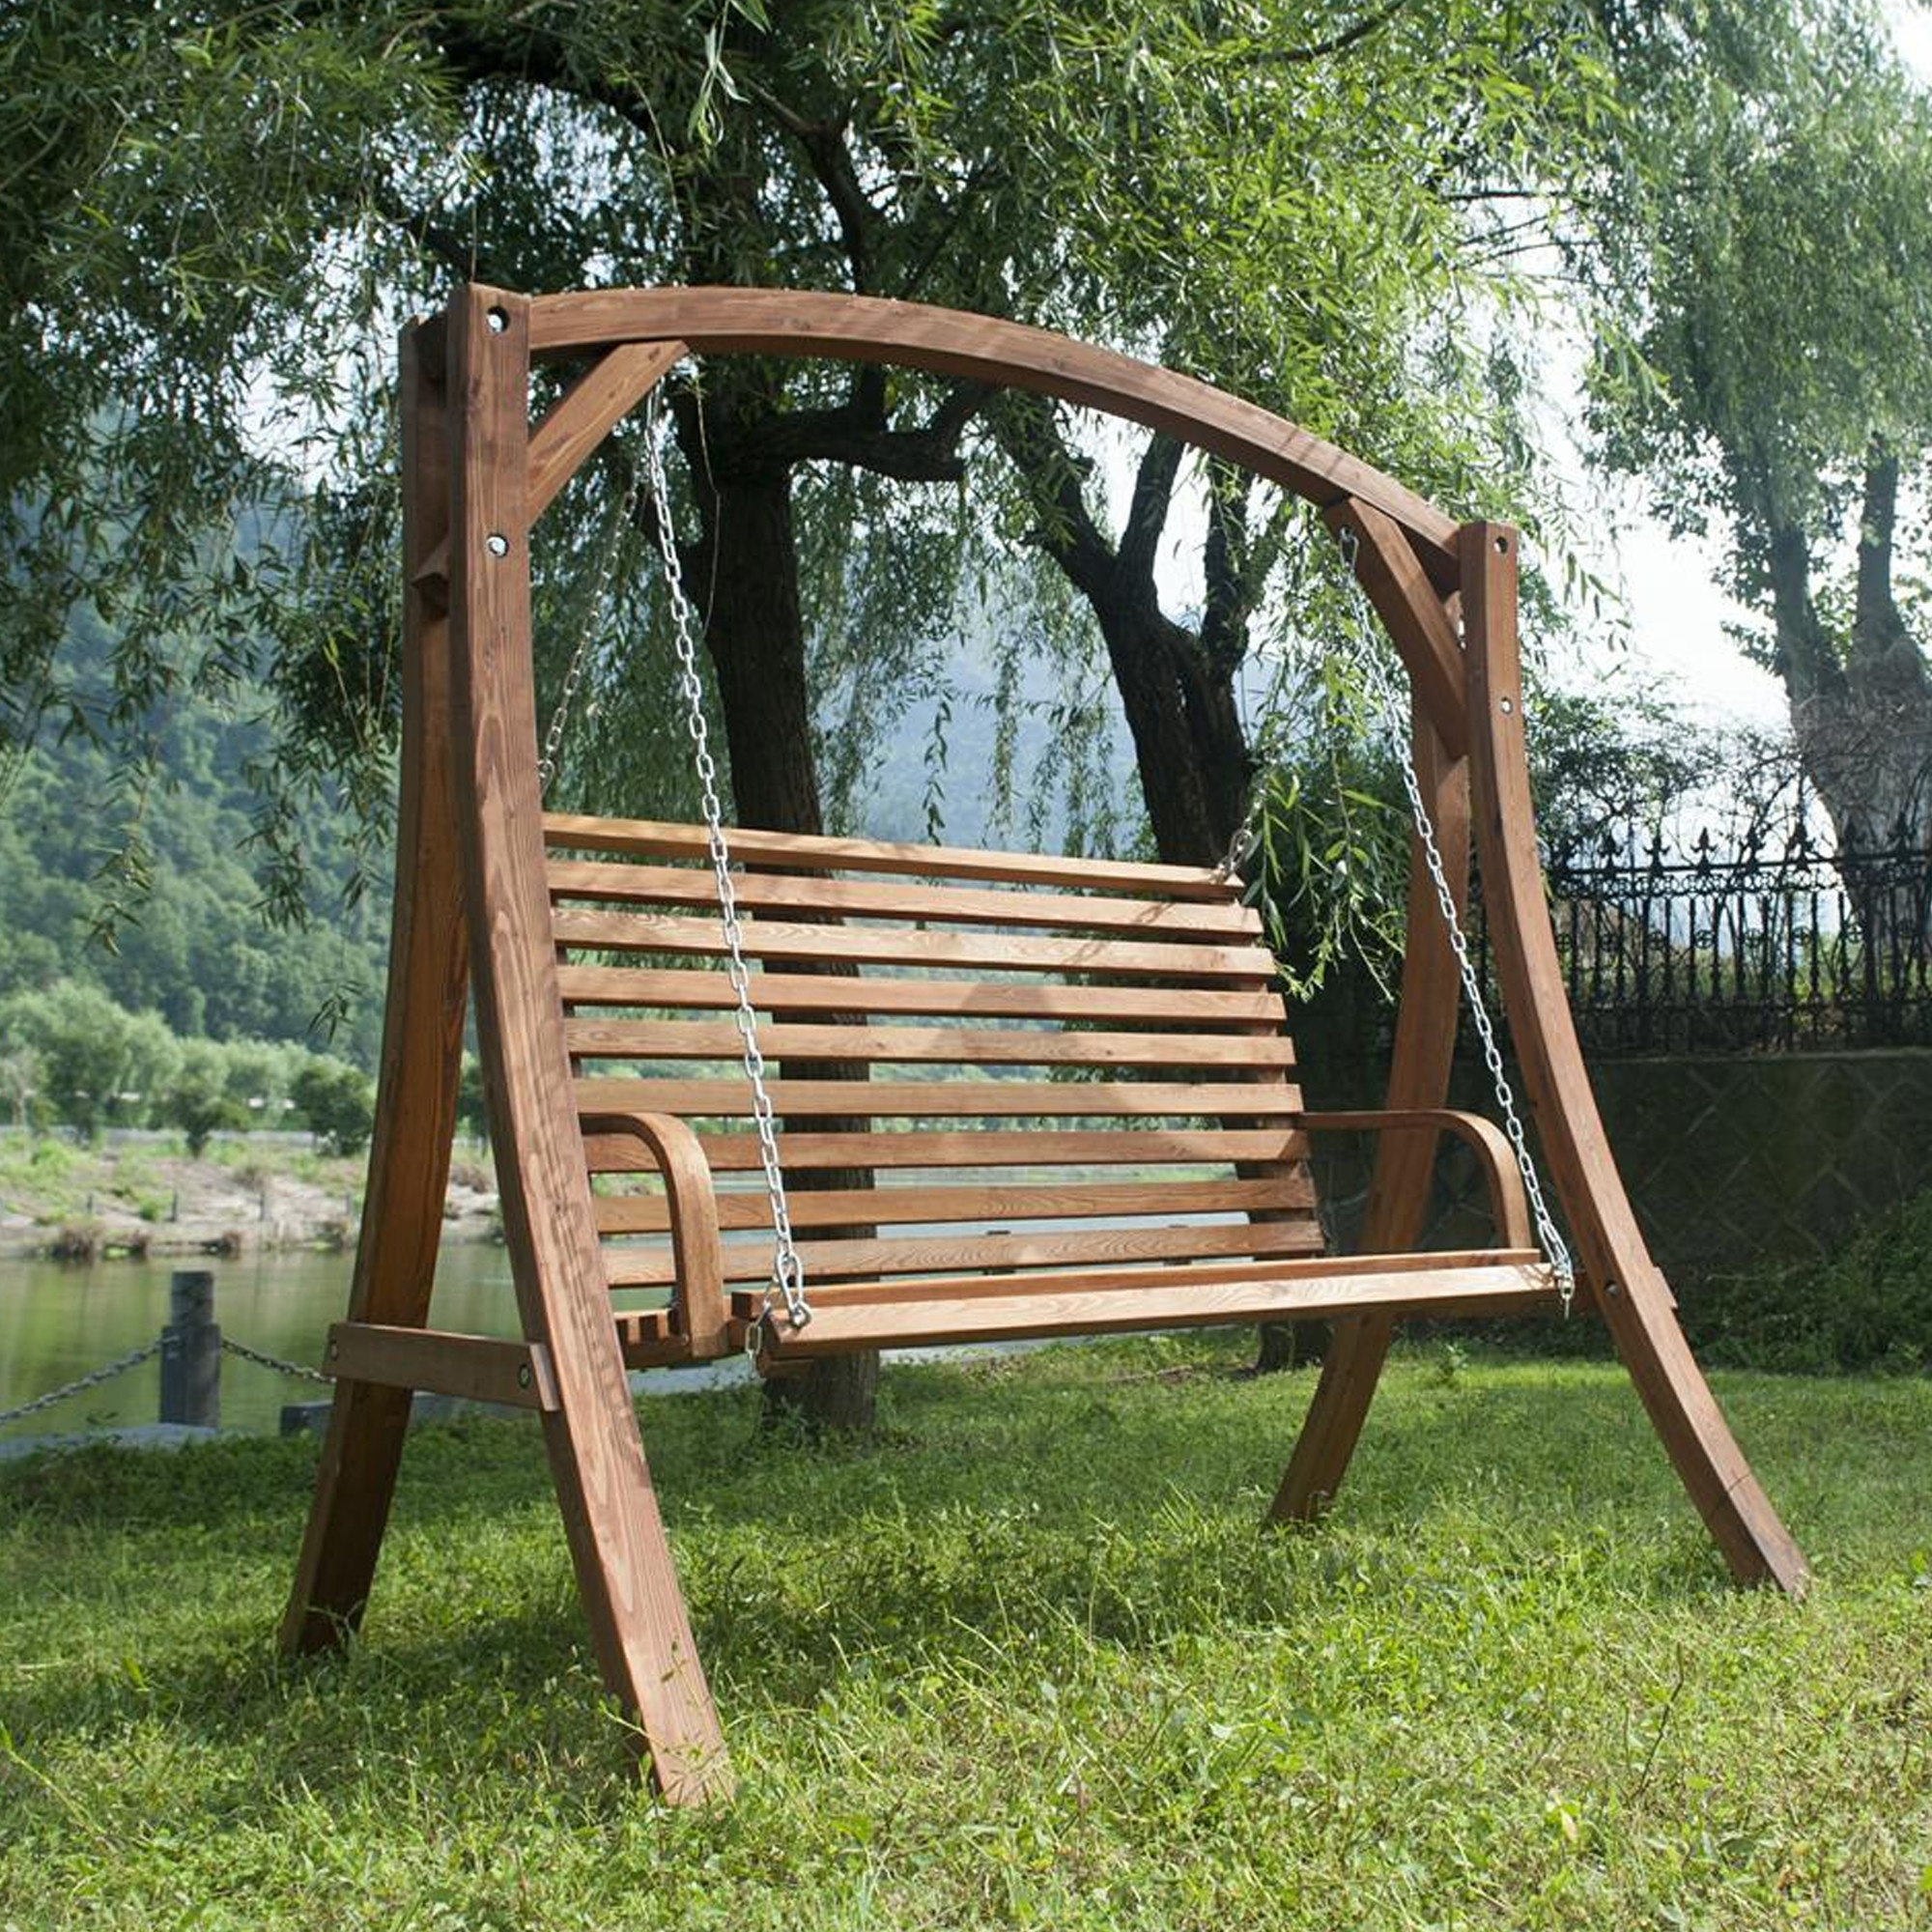 Garden swings are making a difference in the modern